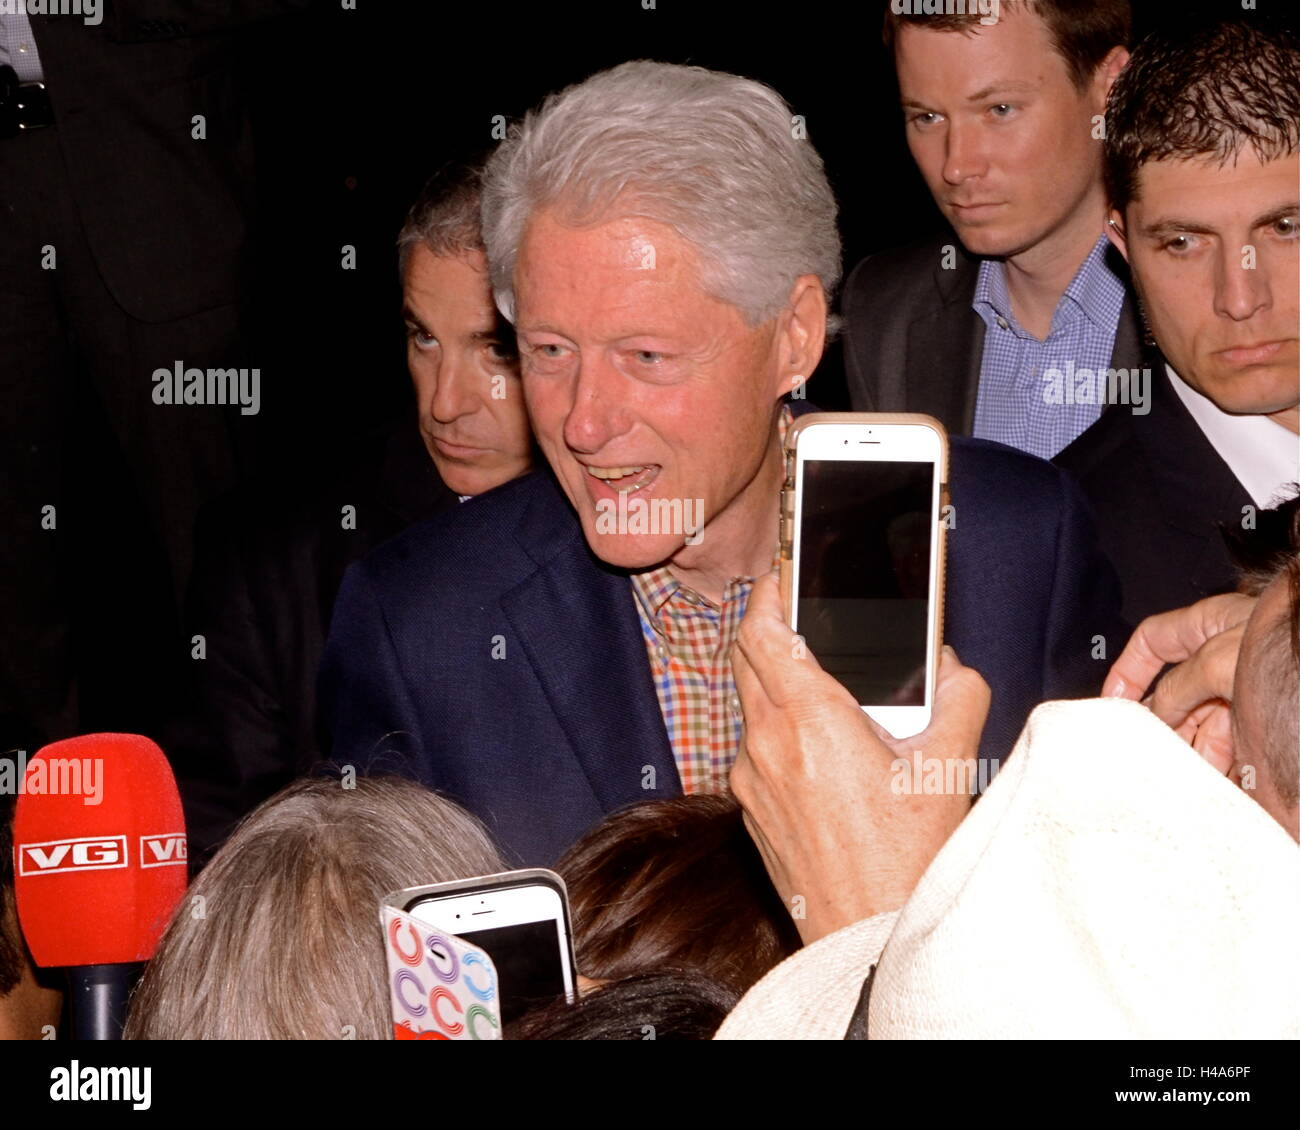 Former President Bill Clinton campaigns for Presidential candidate Hillary Clinton ahead of the June 7th California - Stock Image